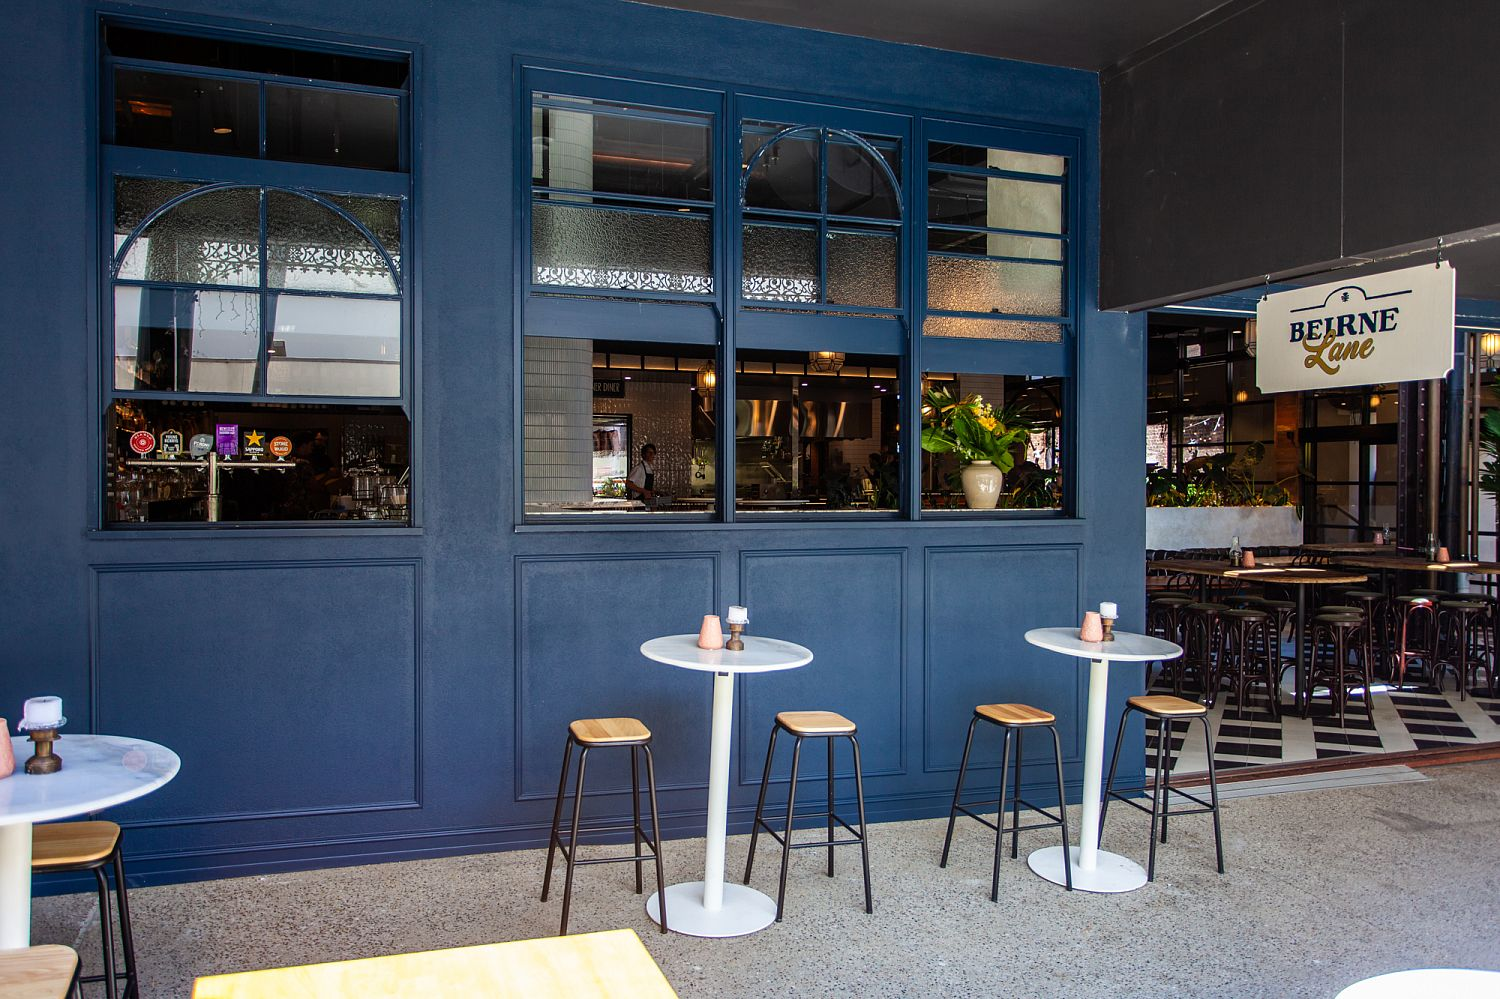 Beirne Lane, Fortitude Valley, QLD. Function Room hire photo #2